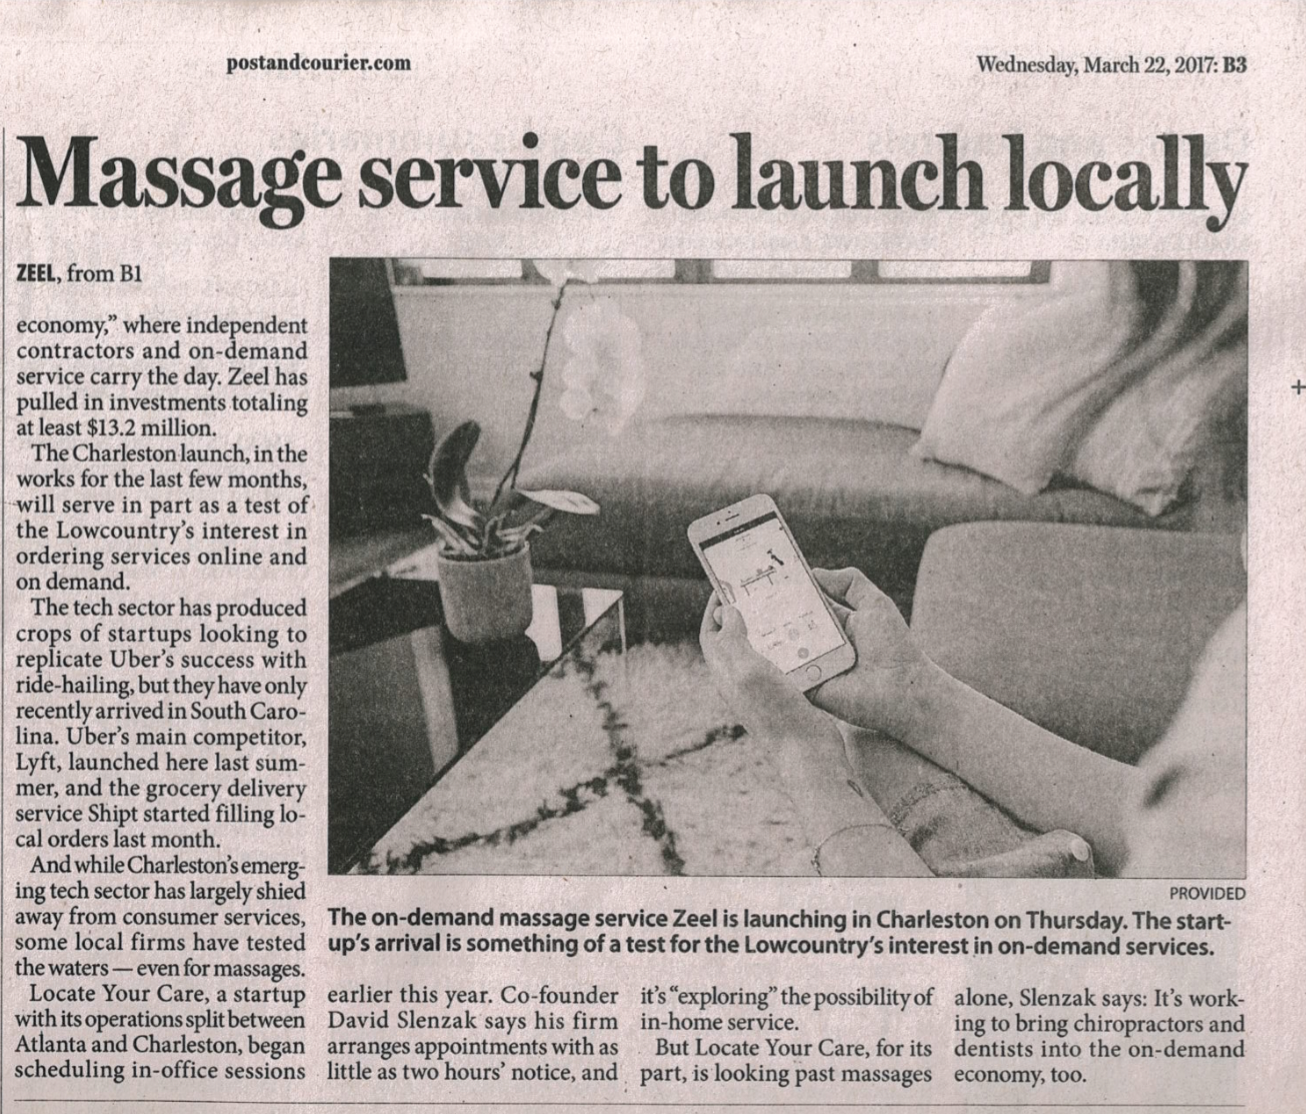 Massage service to launch locally